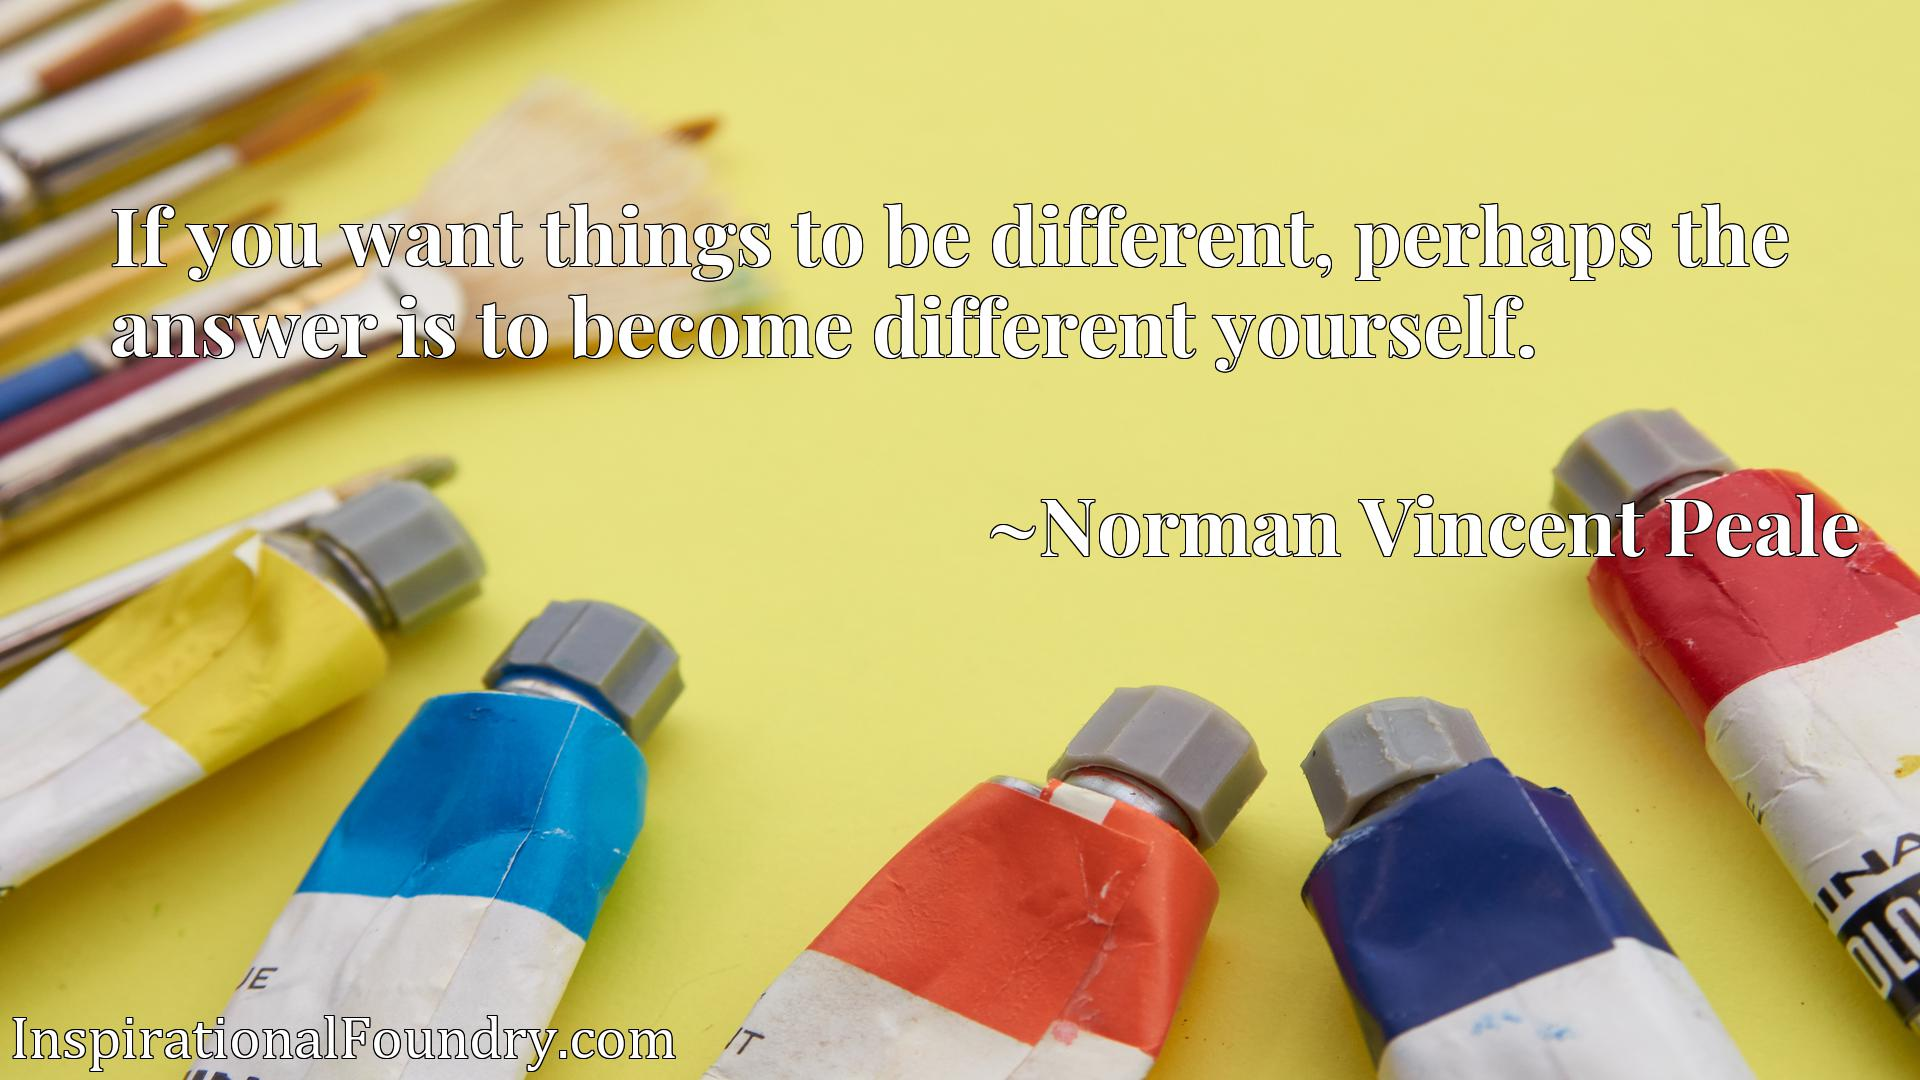 If you want things to be different, perhaps the answer is to become different yourself.